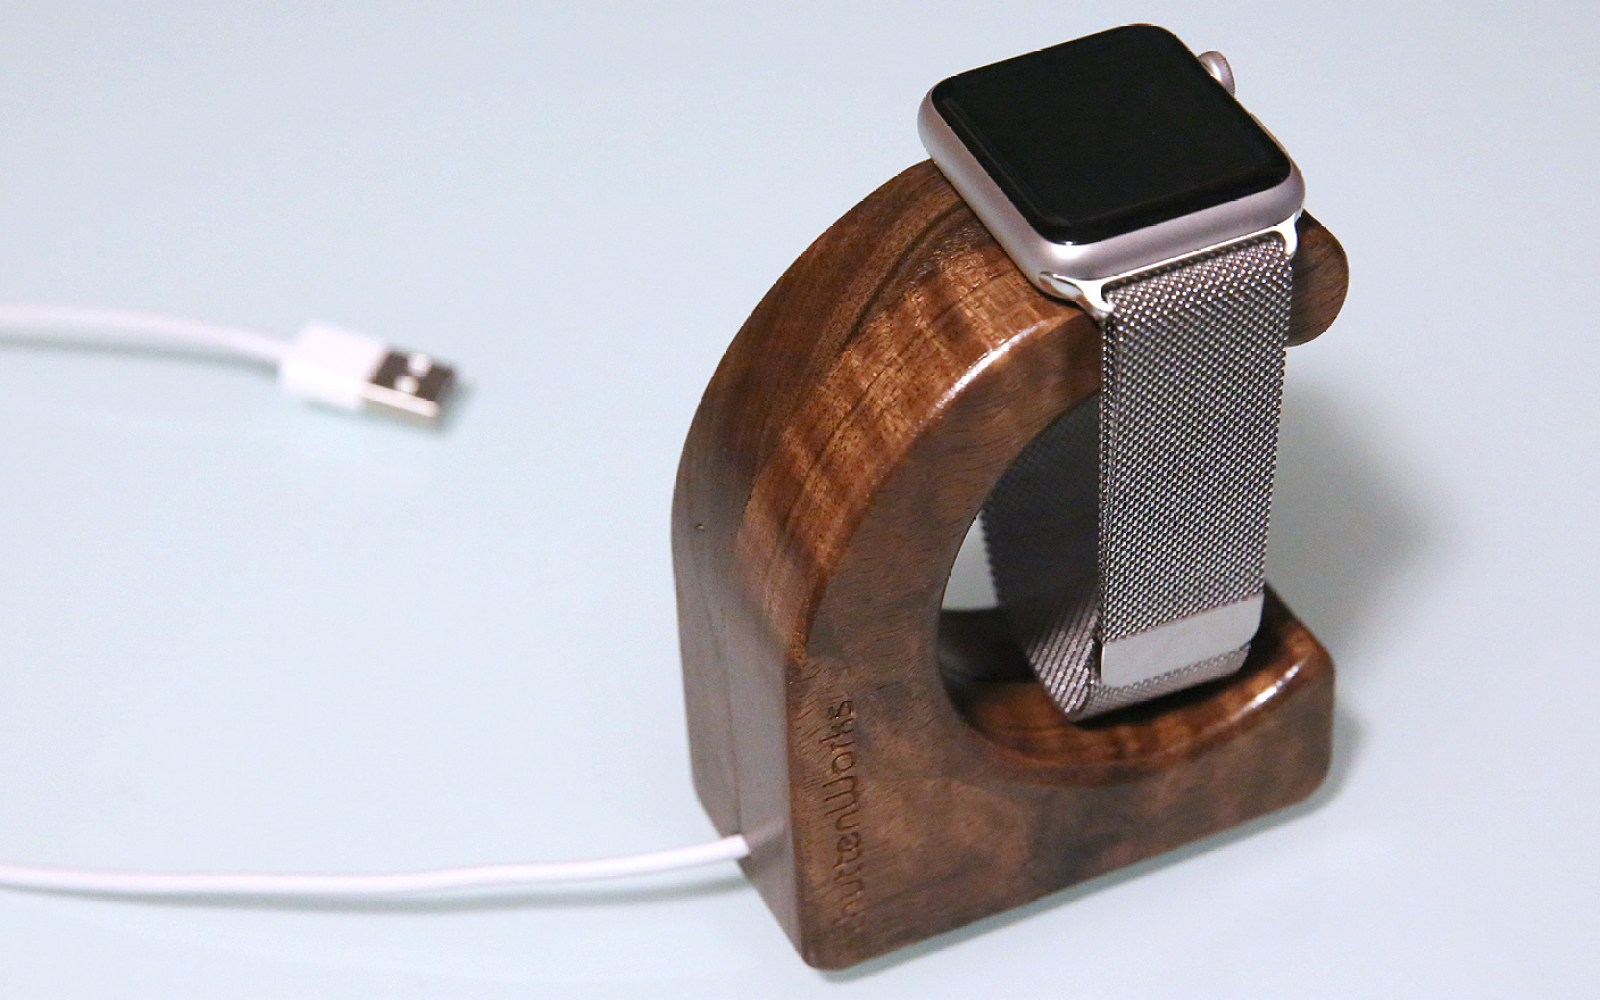 Review: SchuttenWorks' Wave uses magnets and wood in a beautiful Apple Watch charging stand